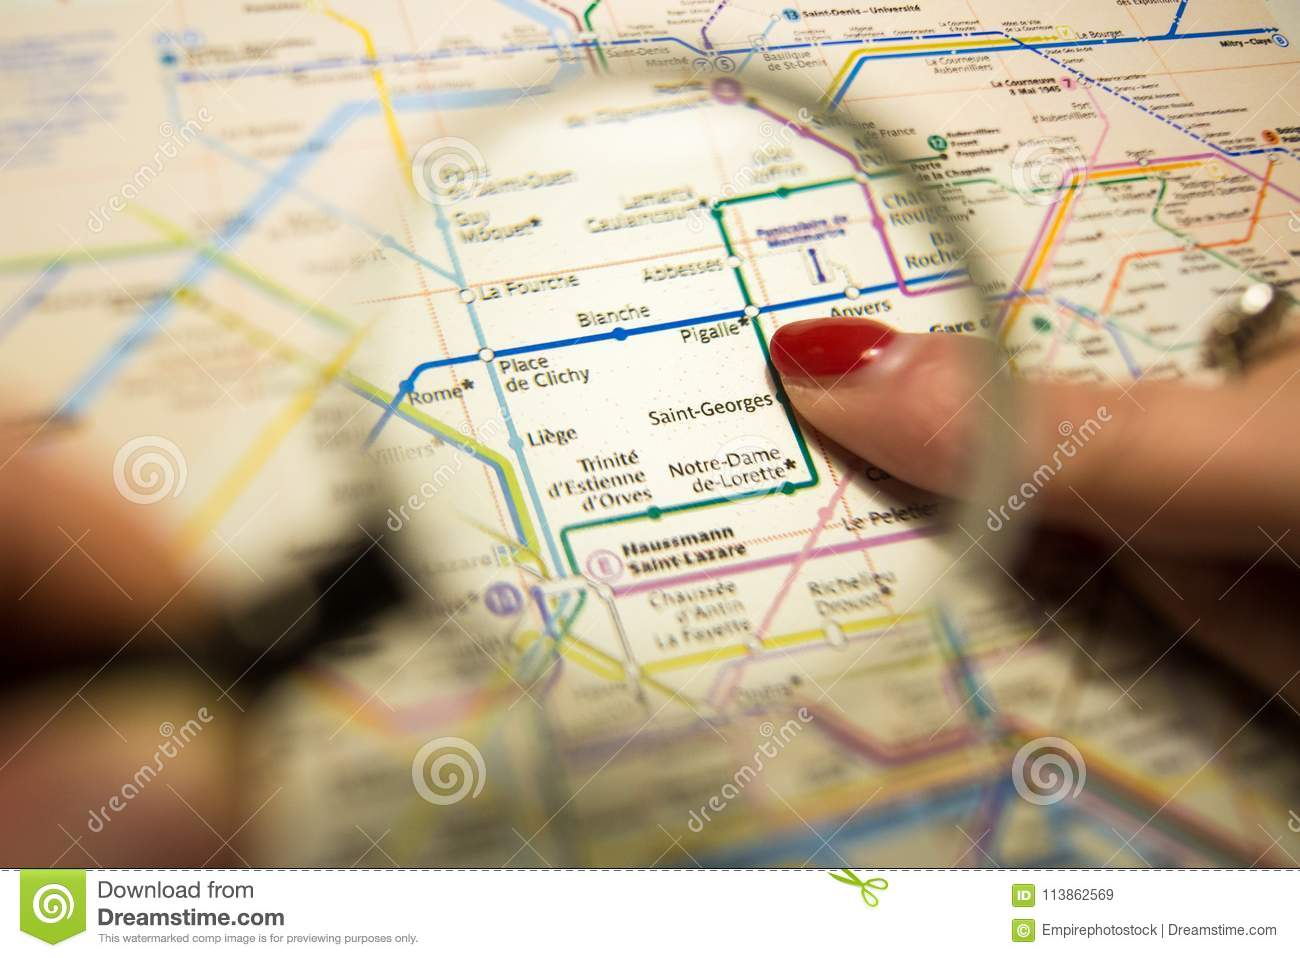 Paris Metro Map Download.Female Hand Showing Pigalle Metro Station On A Printed Paris Metro